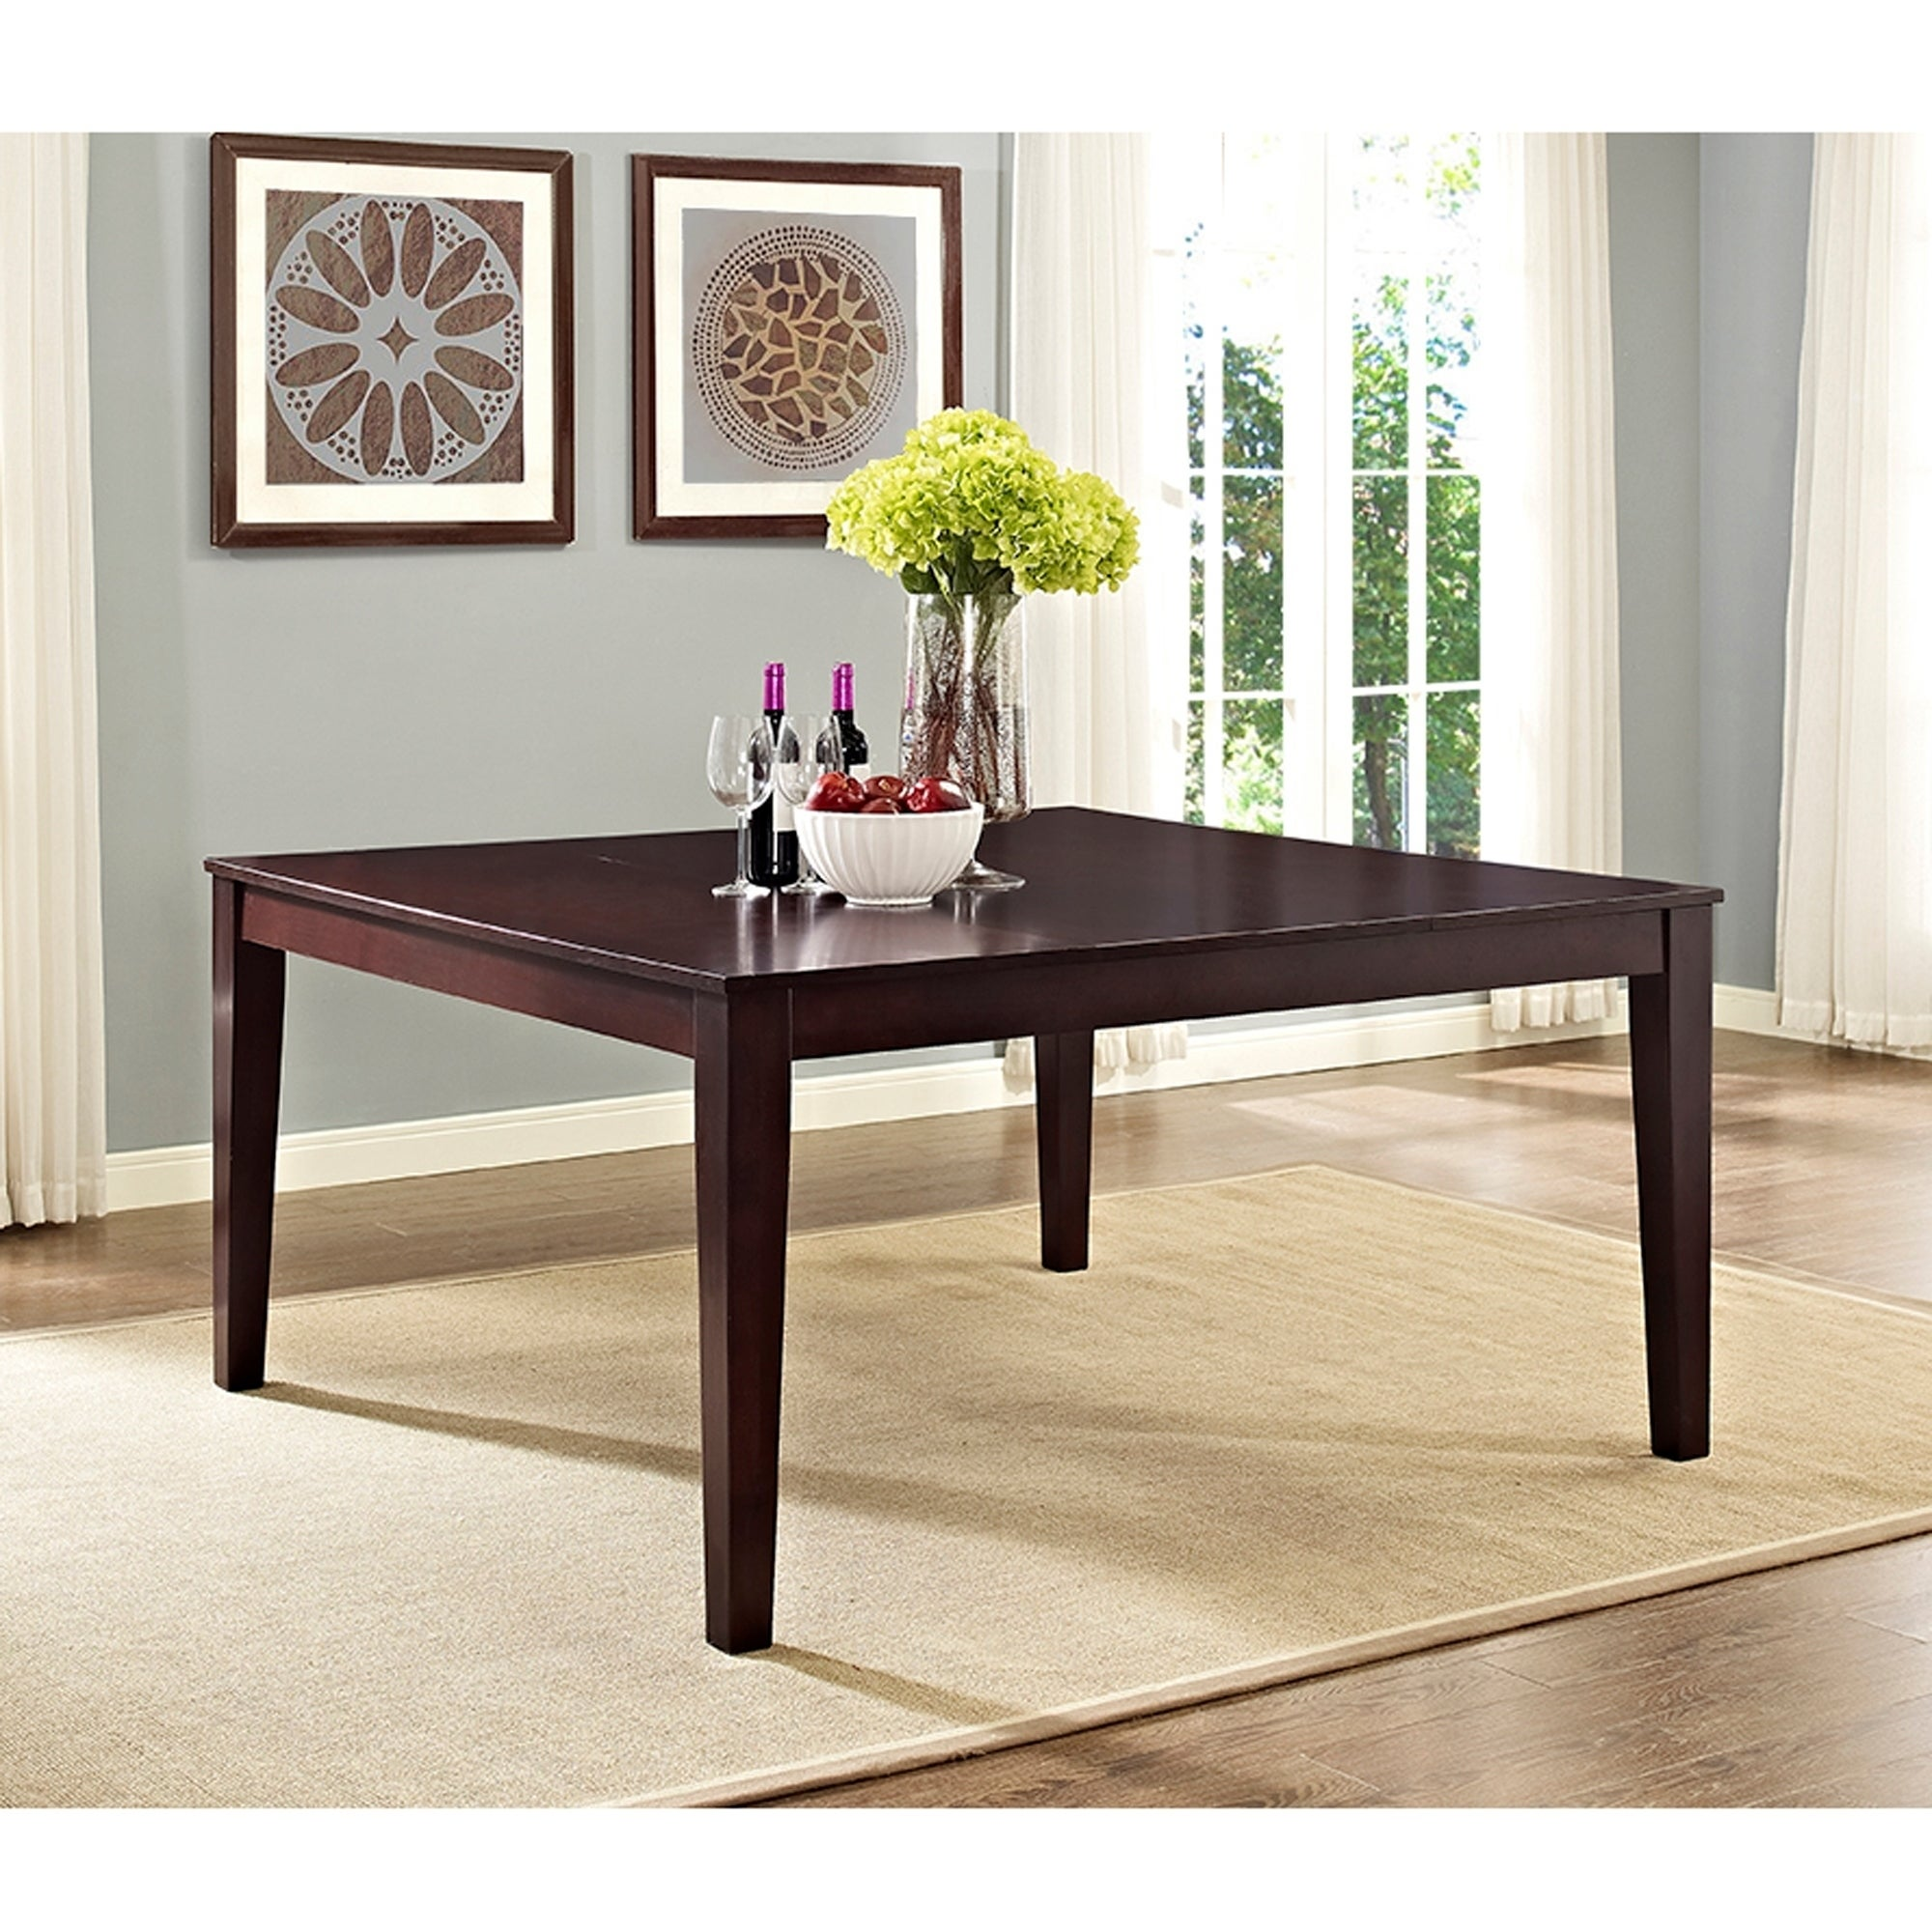 60 Square Dining Table Cuccino X 30